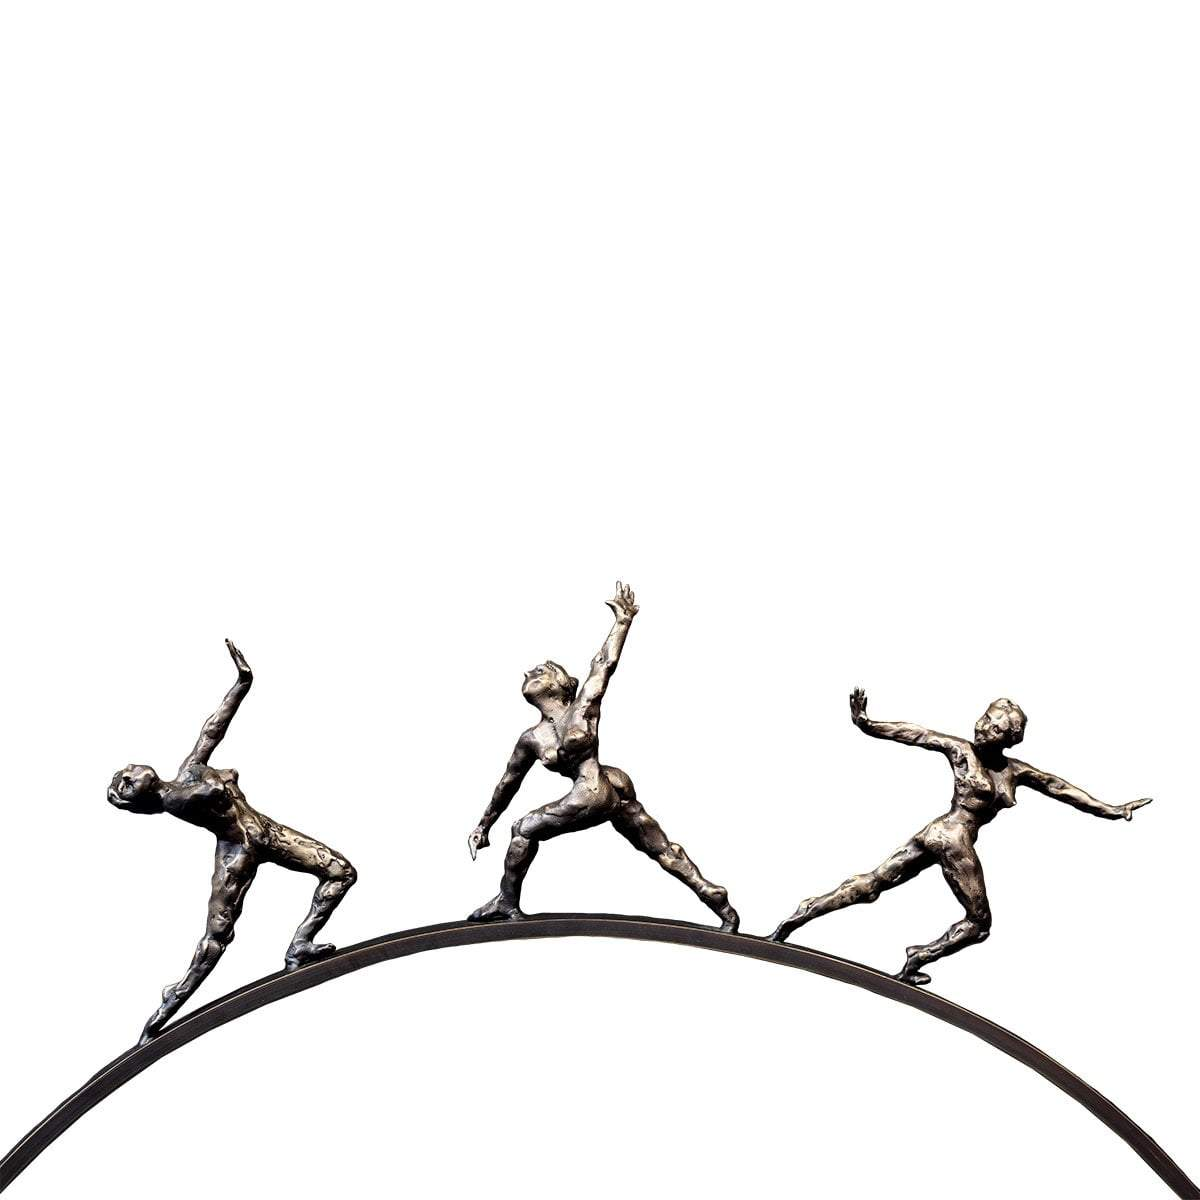 Bliss Dance - Sculpture